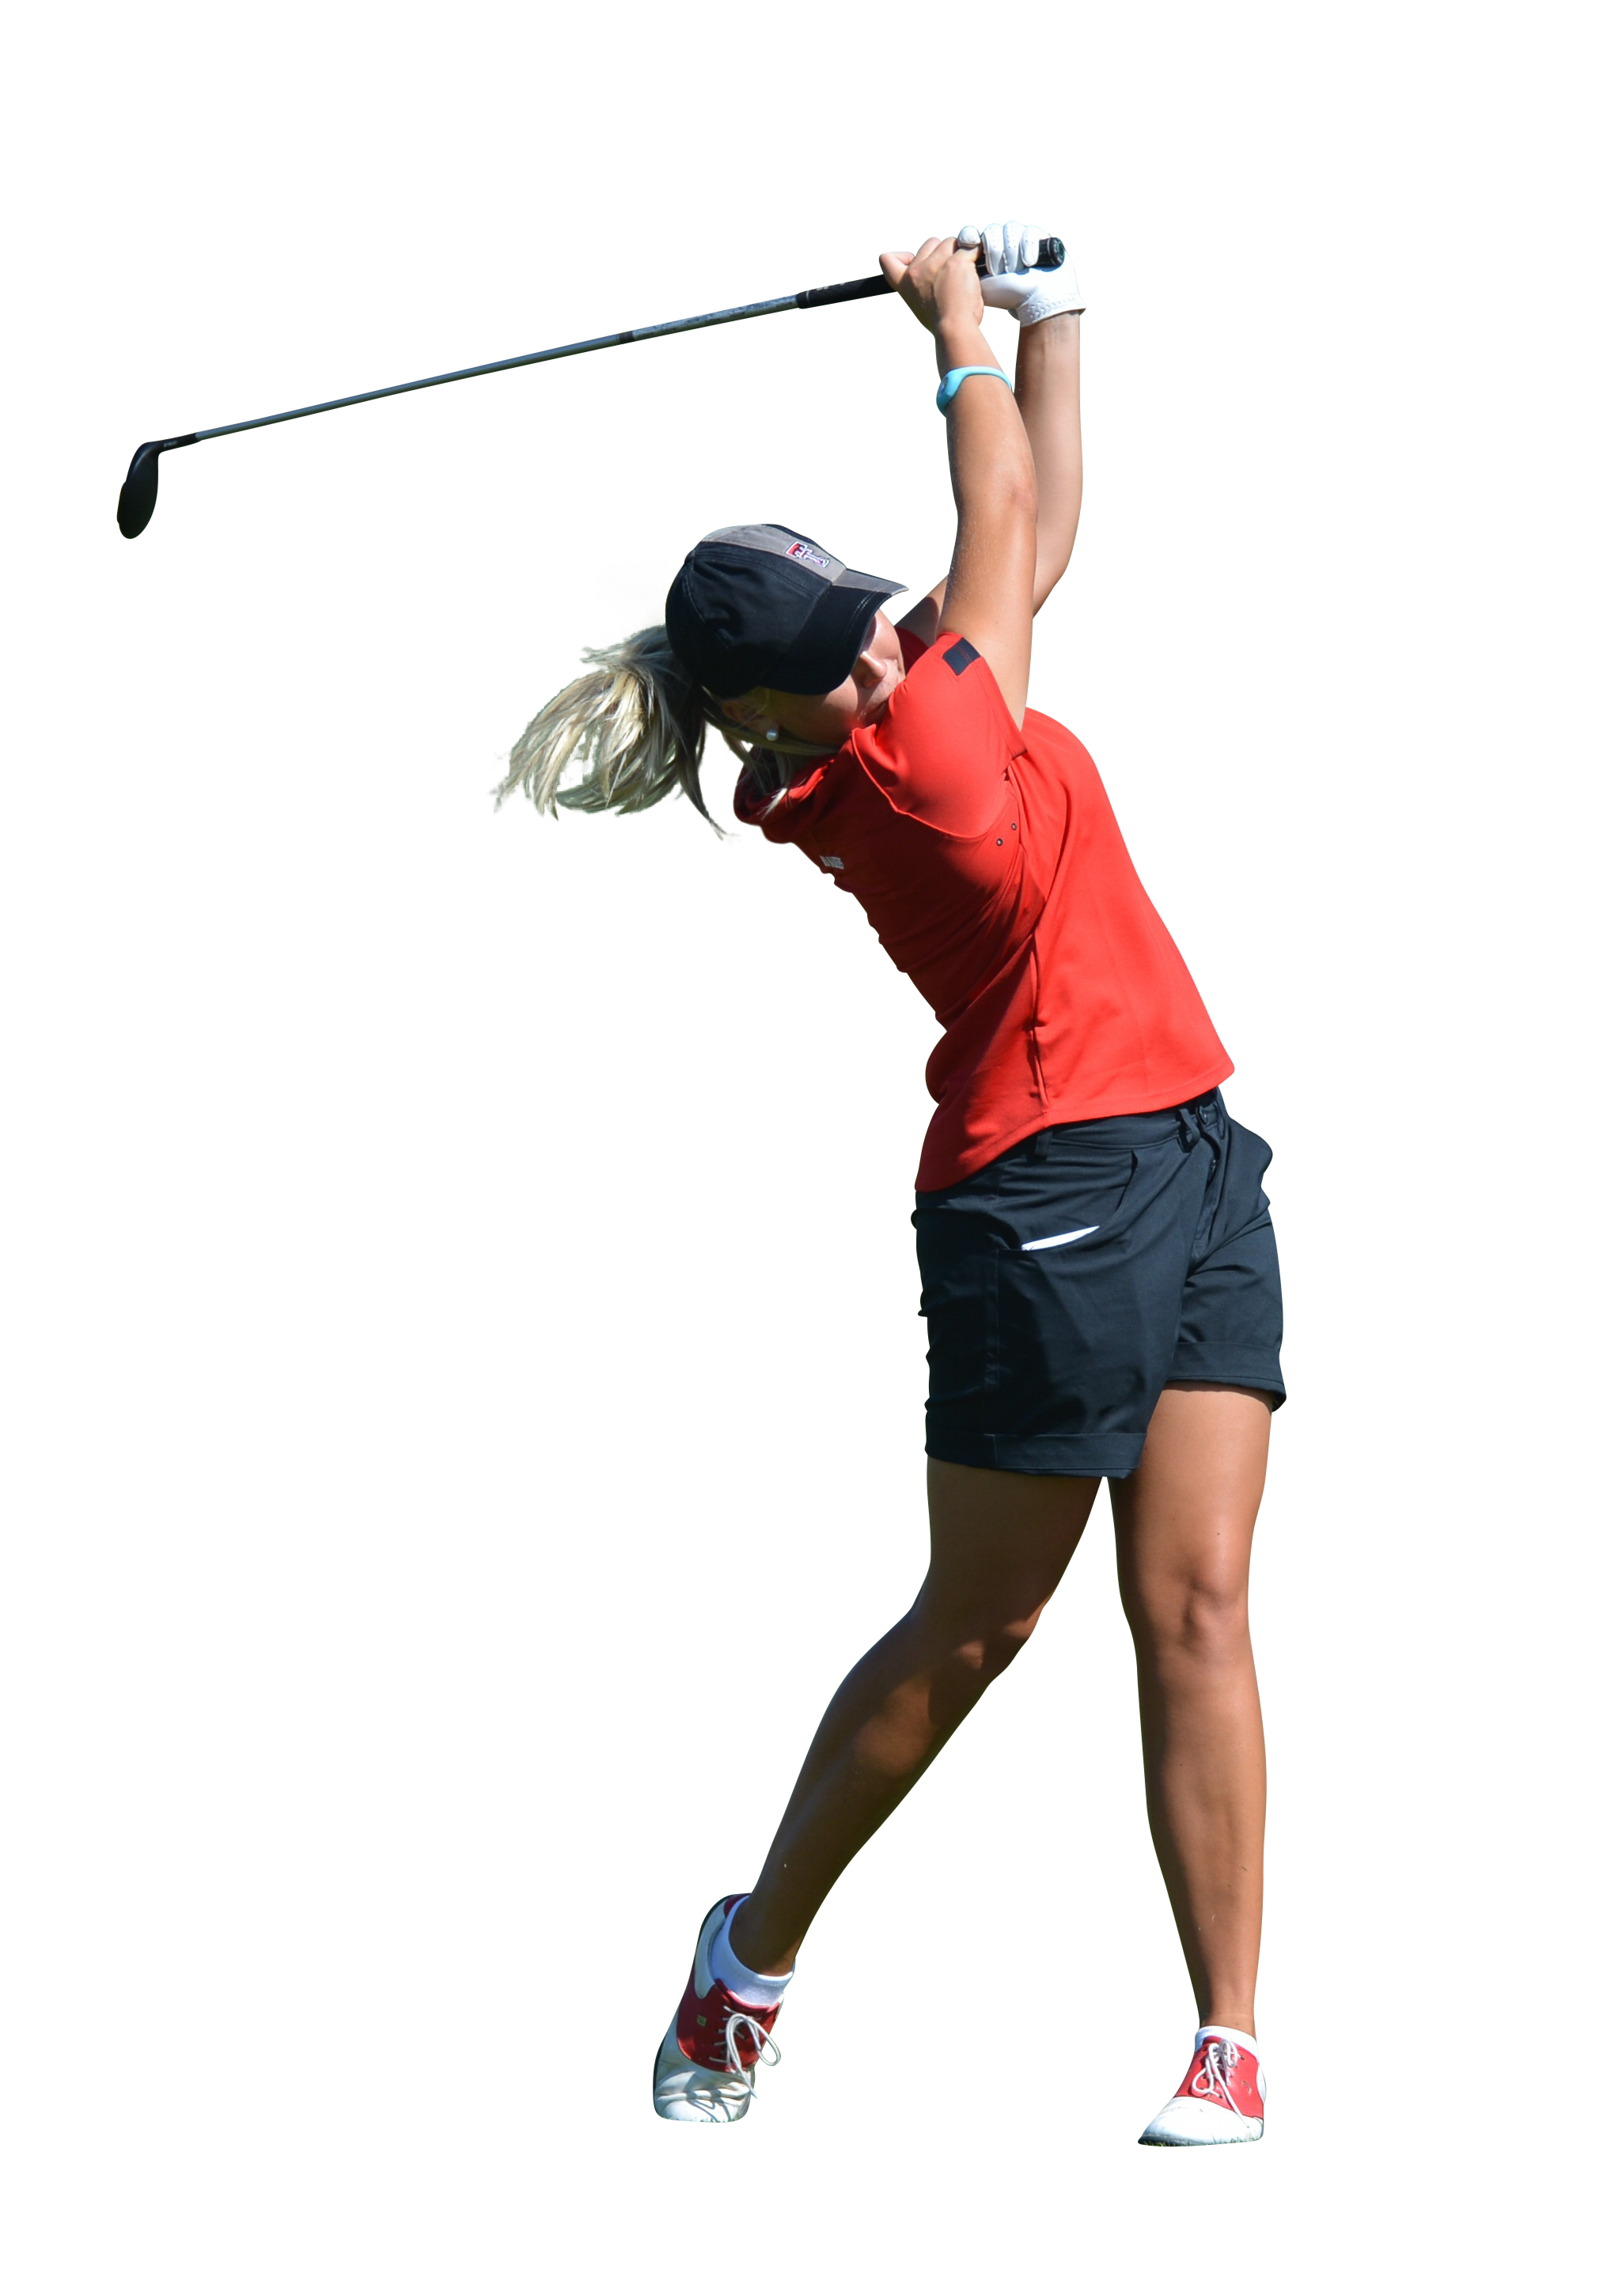 Woman play Golf